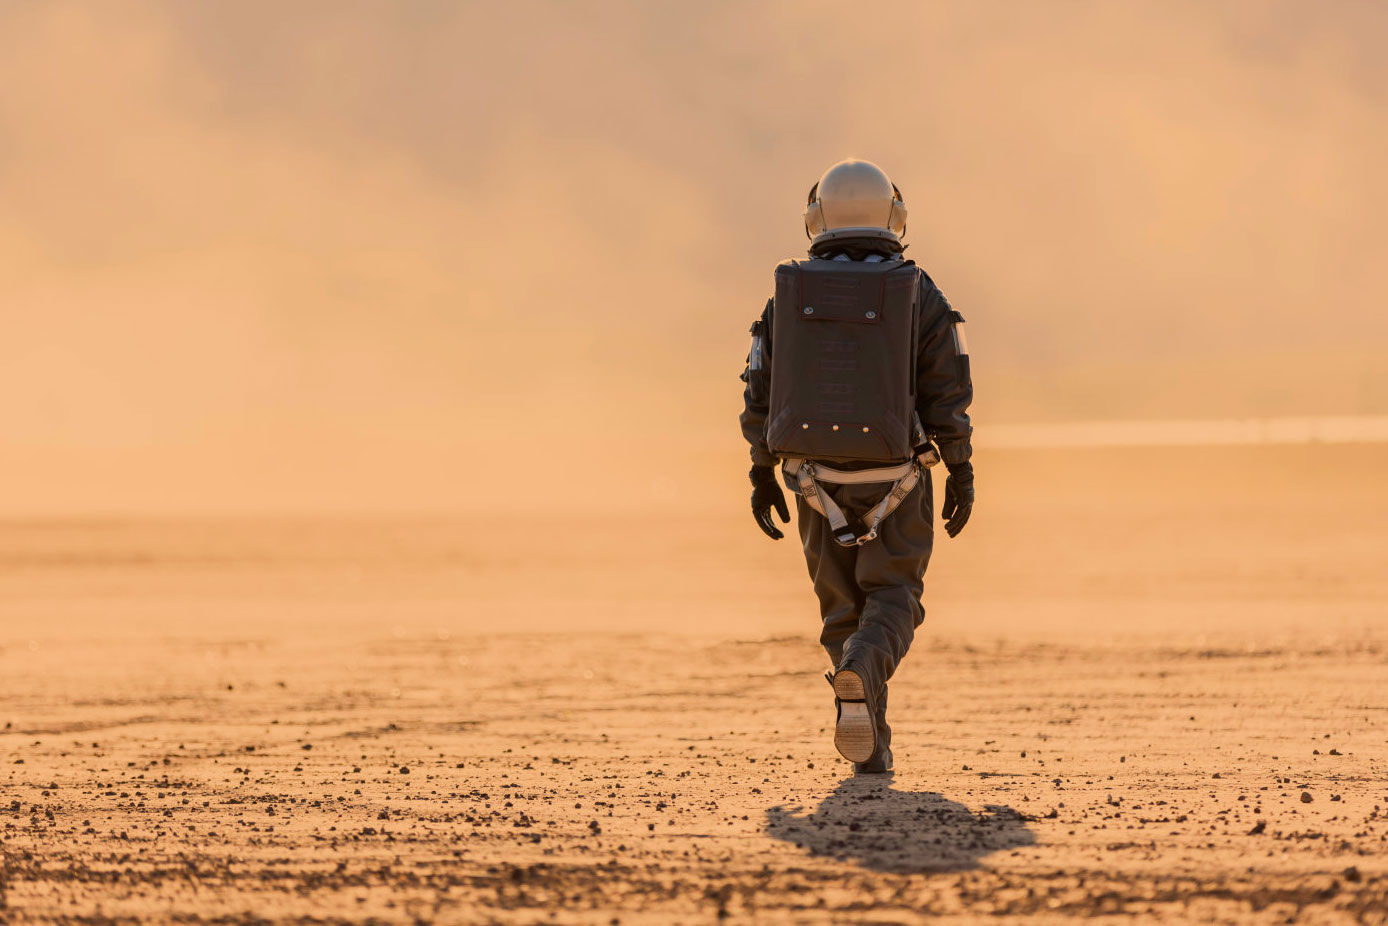 A Thriller Investor Might Save the Bankrupt Mars One Mission